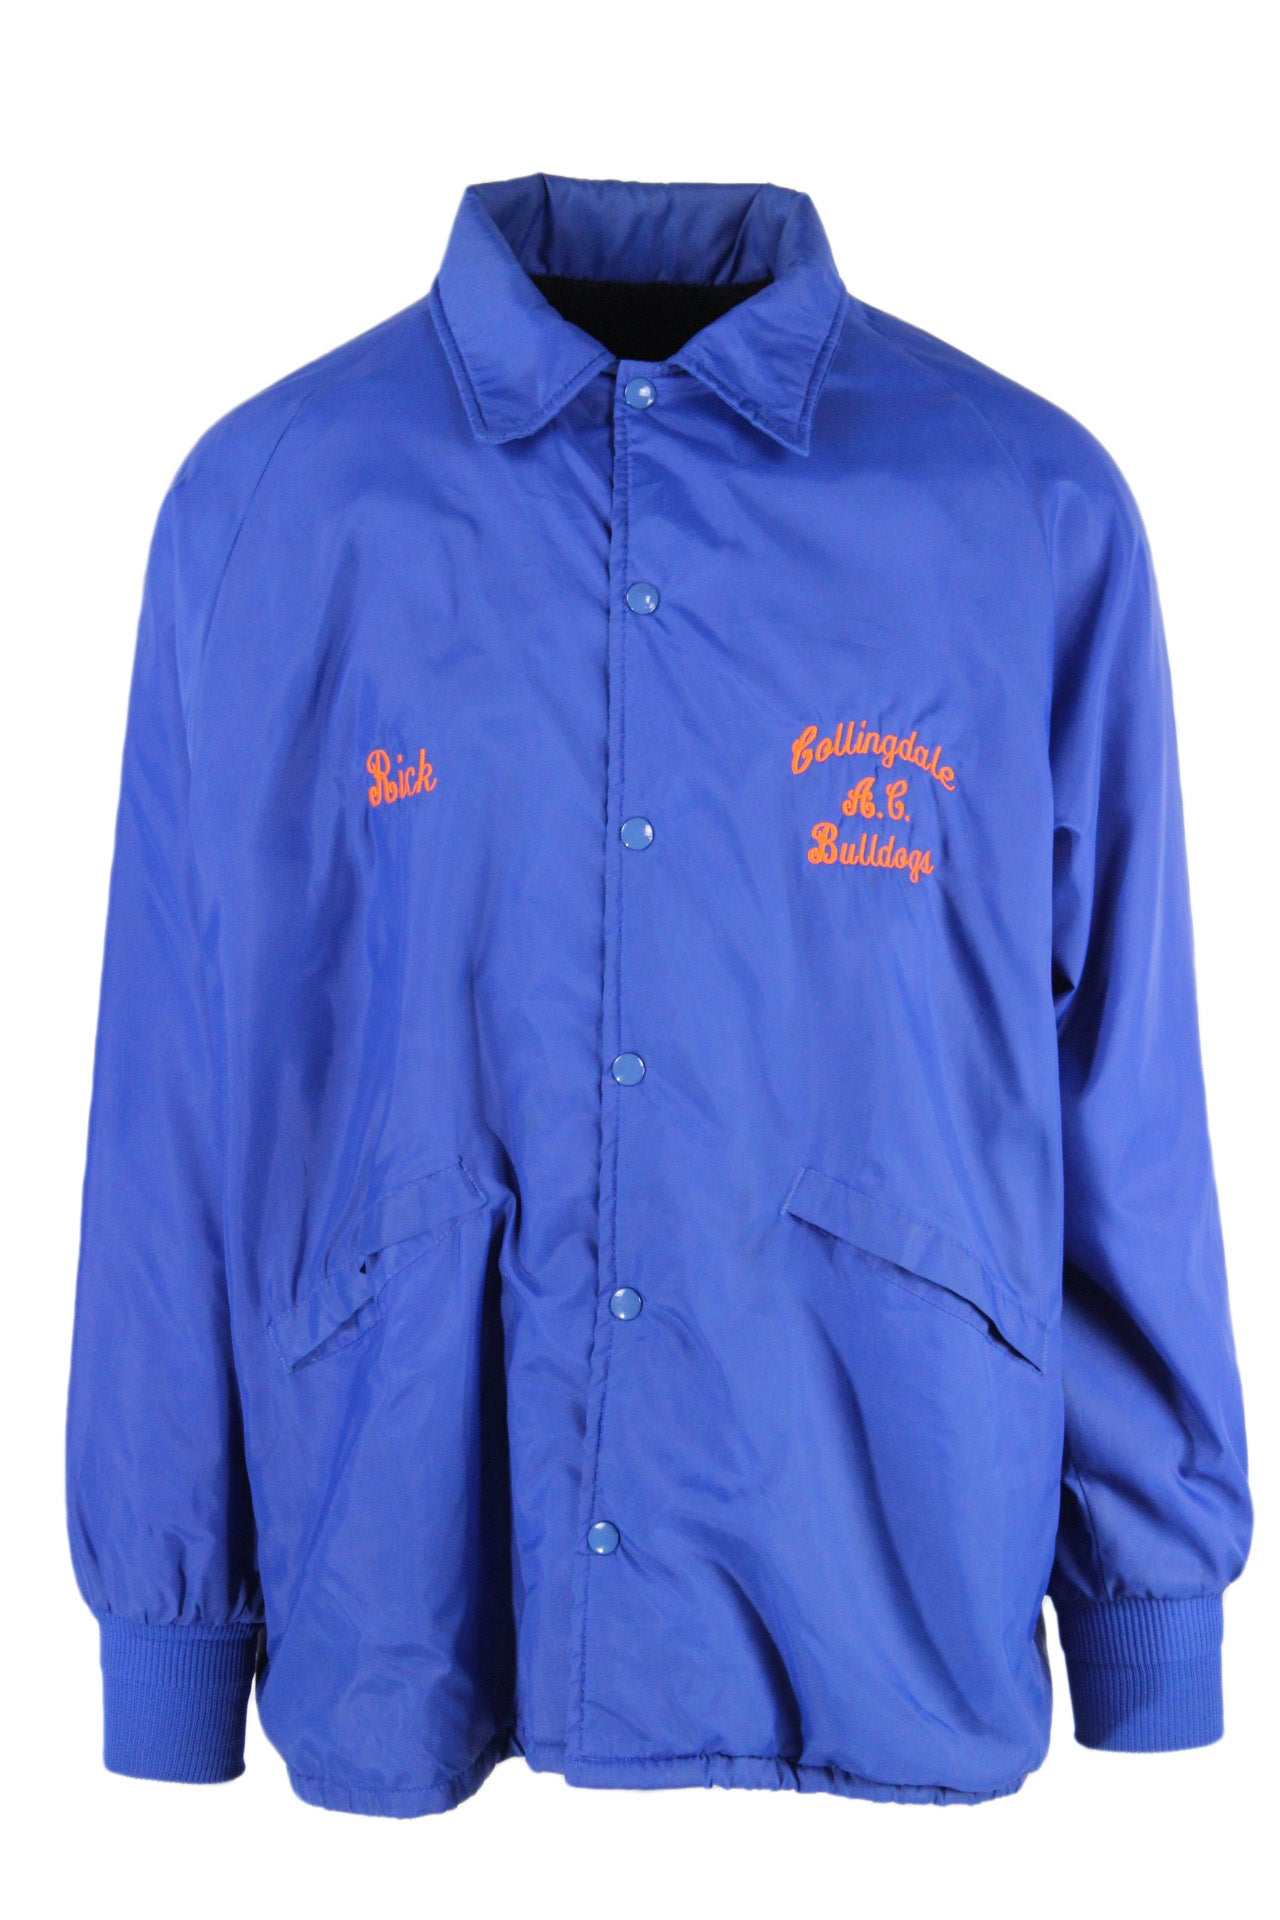 dunbrooke royal blue snap up coach jacket. features 'rick/collingdale bulldogs' embroidered at front, 'collingdale athletic club' embroidered with bulldog patch at back. hand pockets at front, ribbed at cuffs, and fully lined.